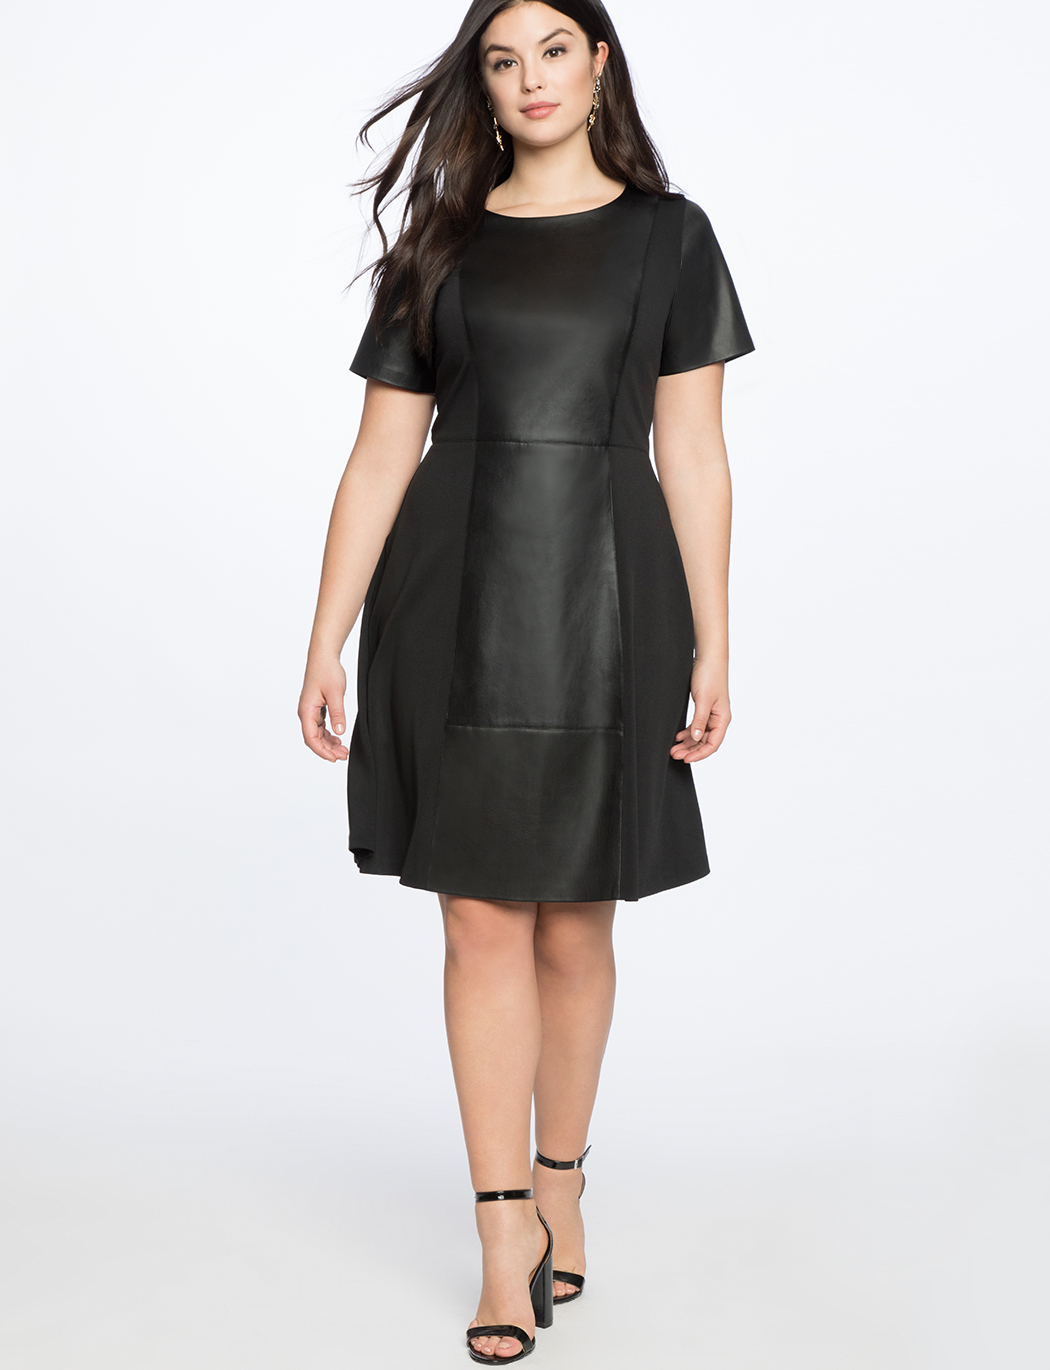 Faux Leather and Ponte Mix Dress | Women\'s Plus Size Dresses | ELOQUII